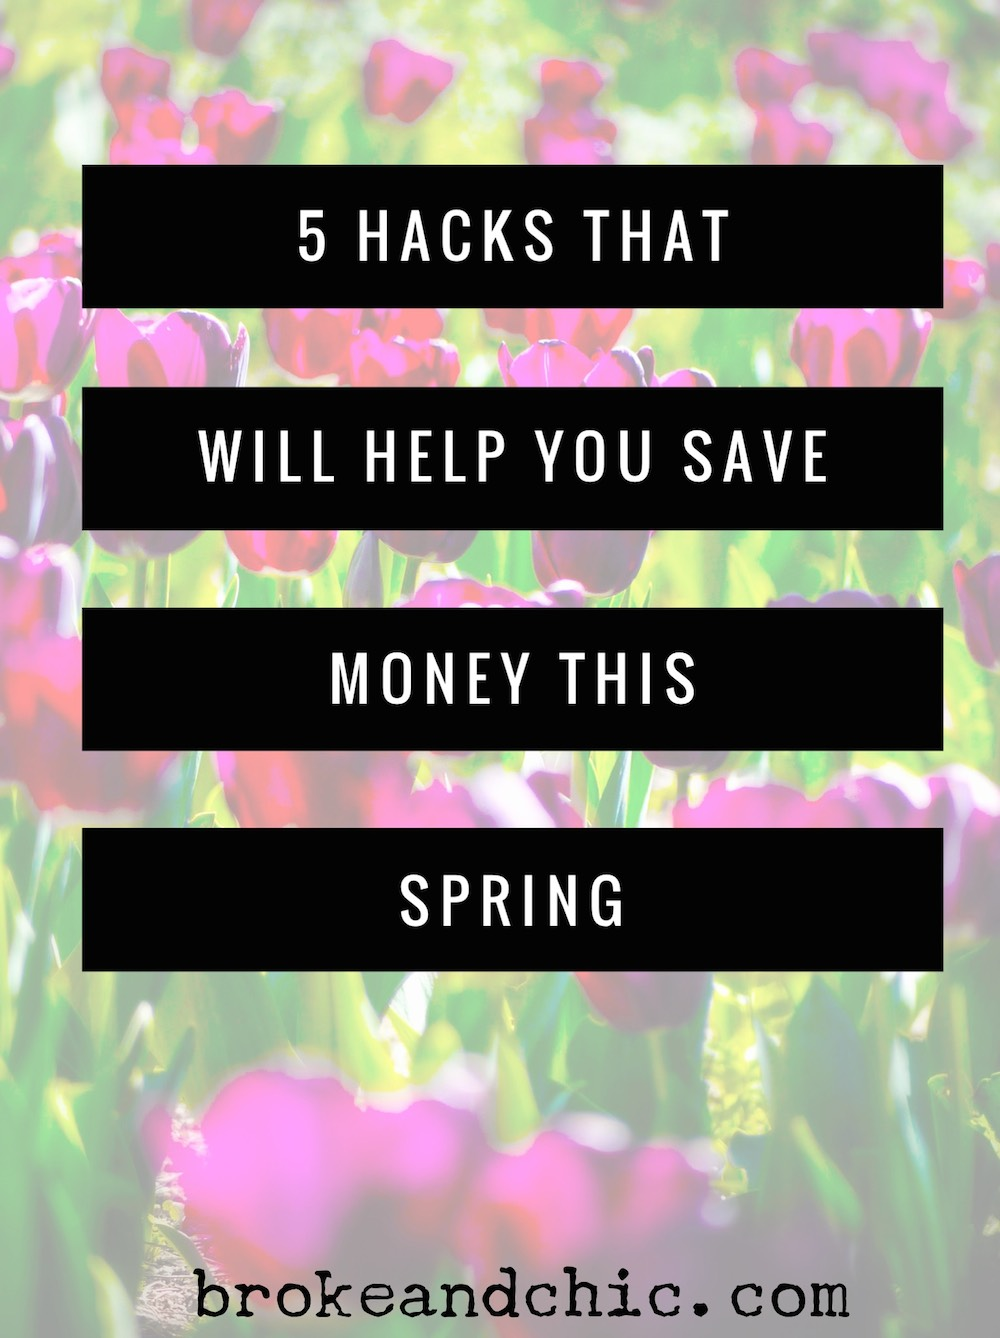 5 Hacks That Will Help You Save Money This Spring // www.brokeandchic.com